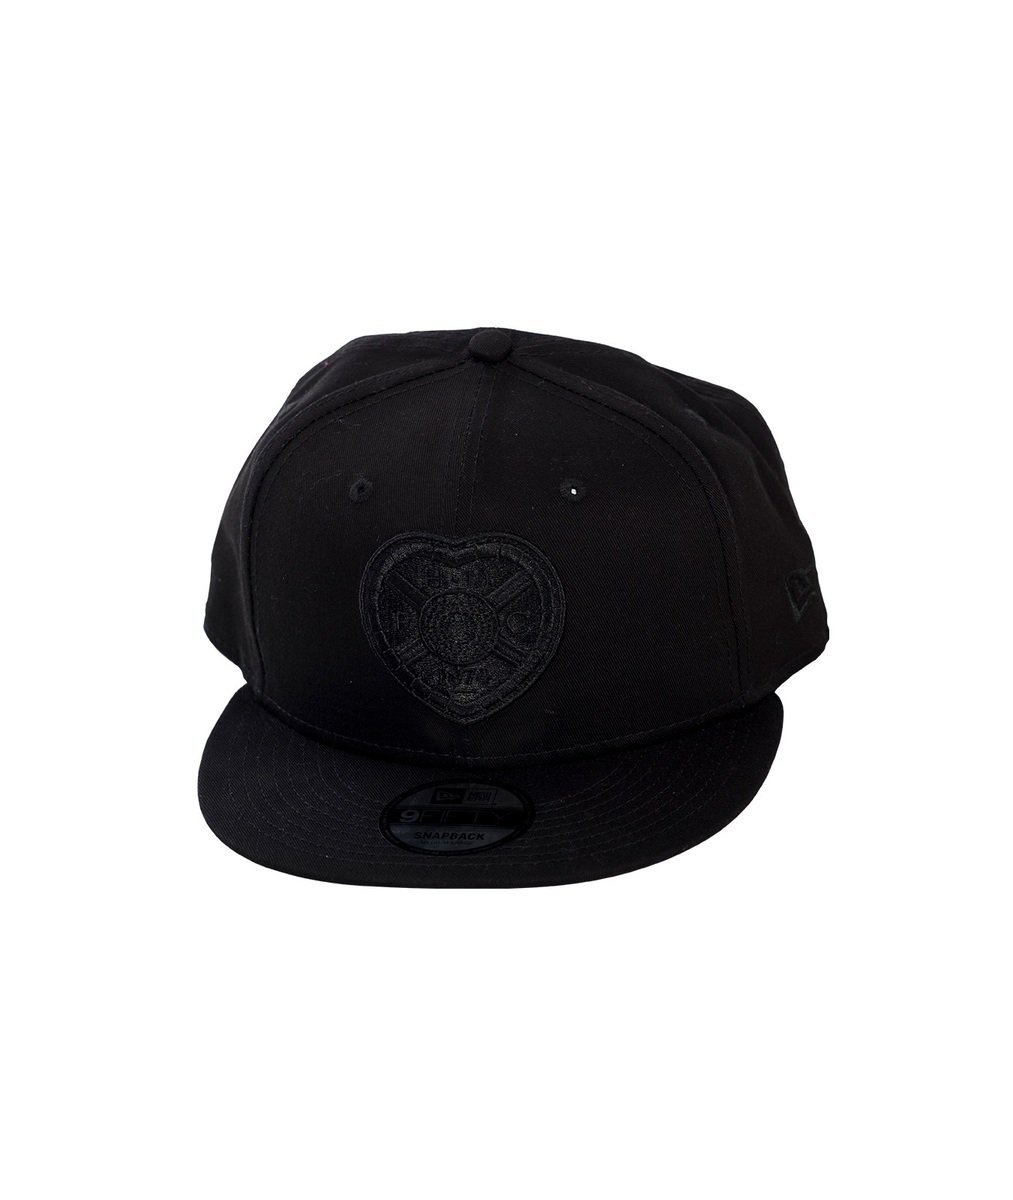 New Era Embroidered Cap - Black Thumbnail 8666ada178f